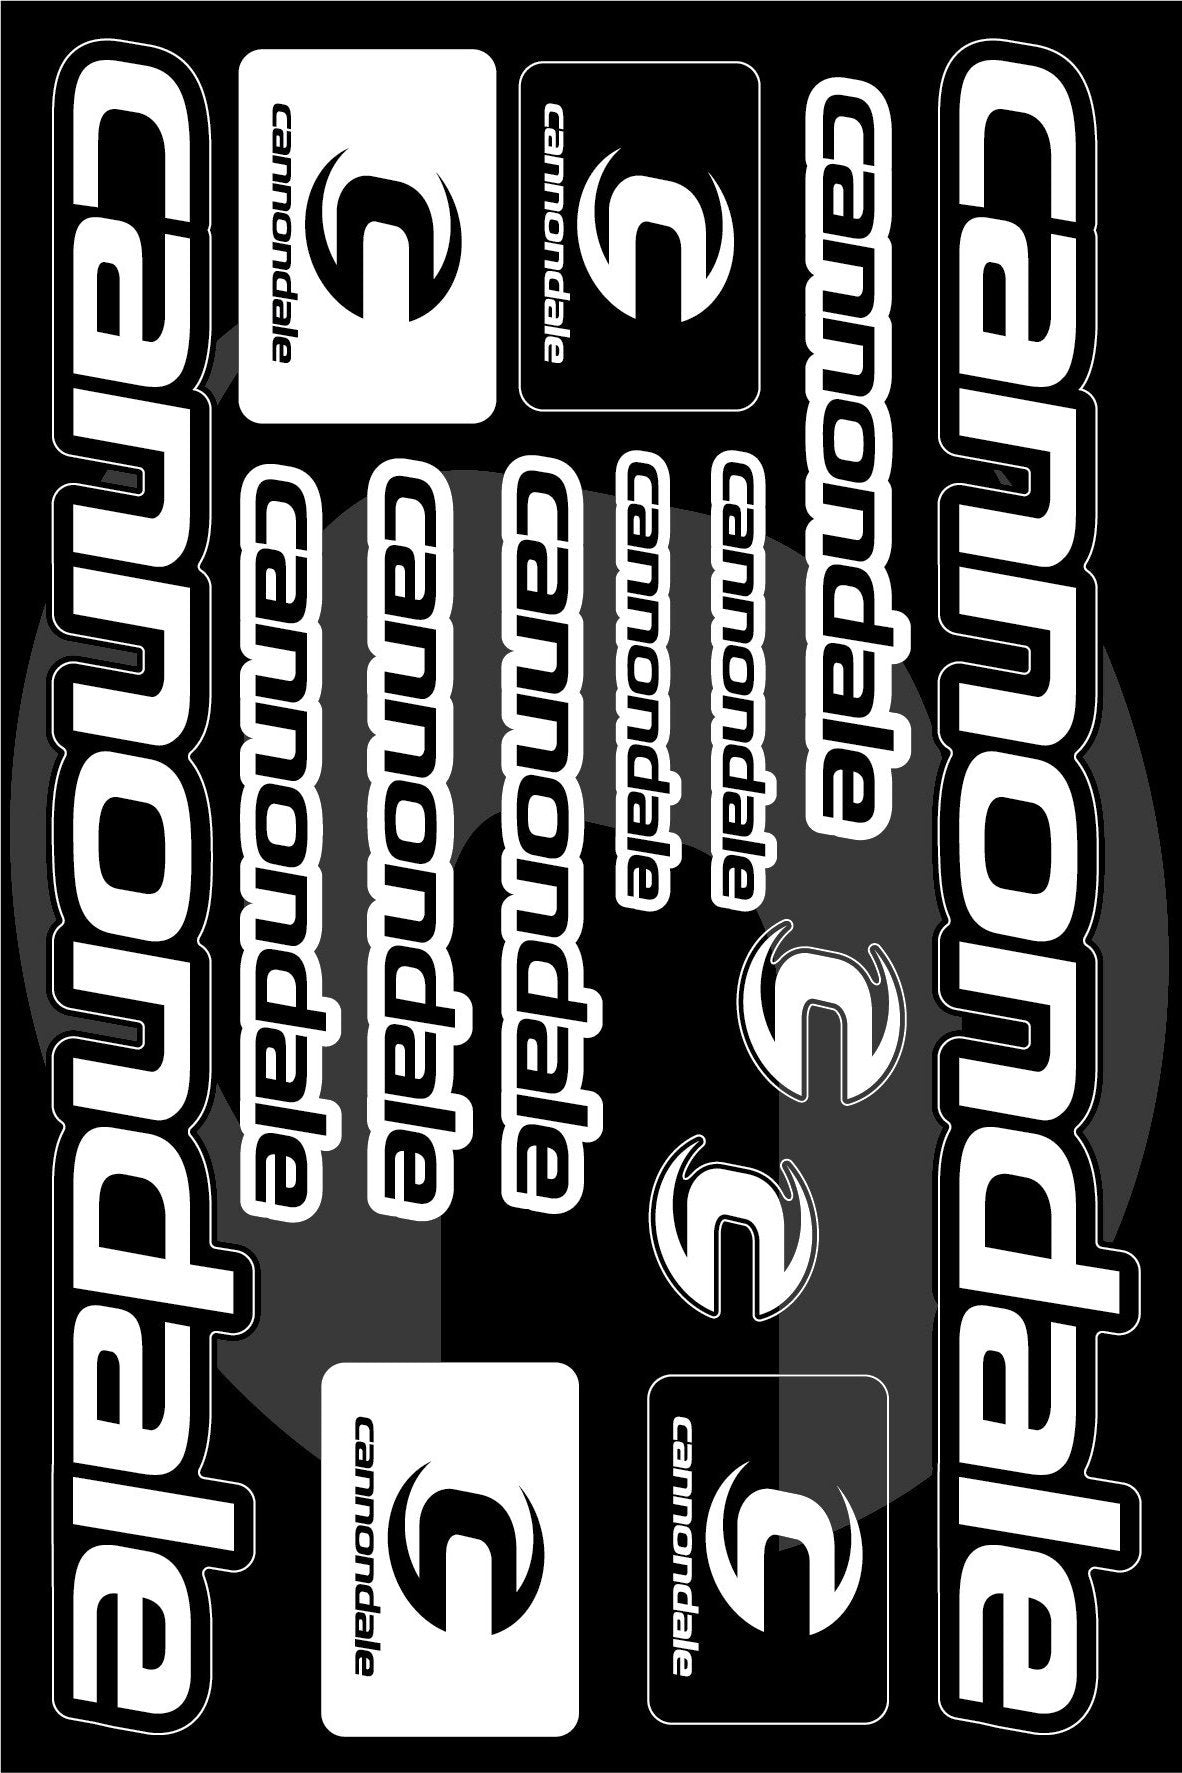 Cannondale self-adhesive sticker for a bike - black & white - Art Life Decor